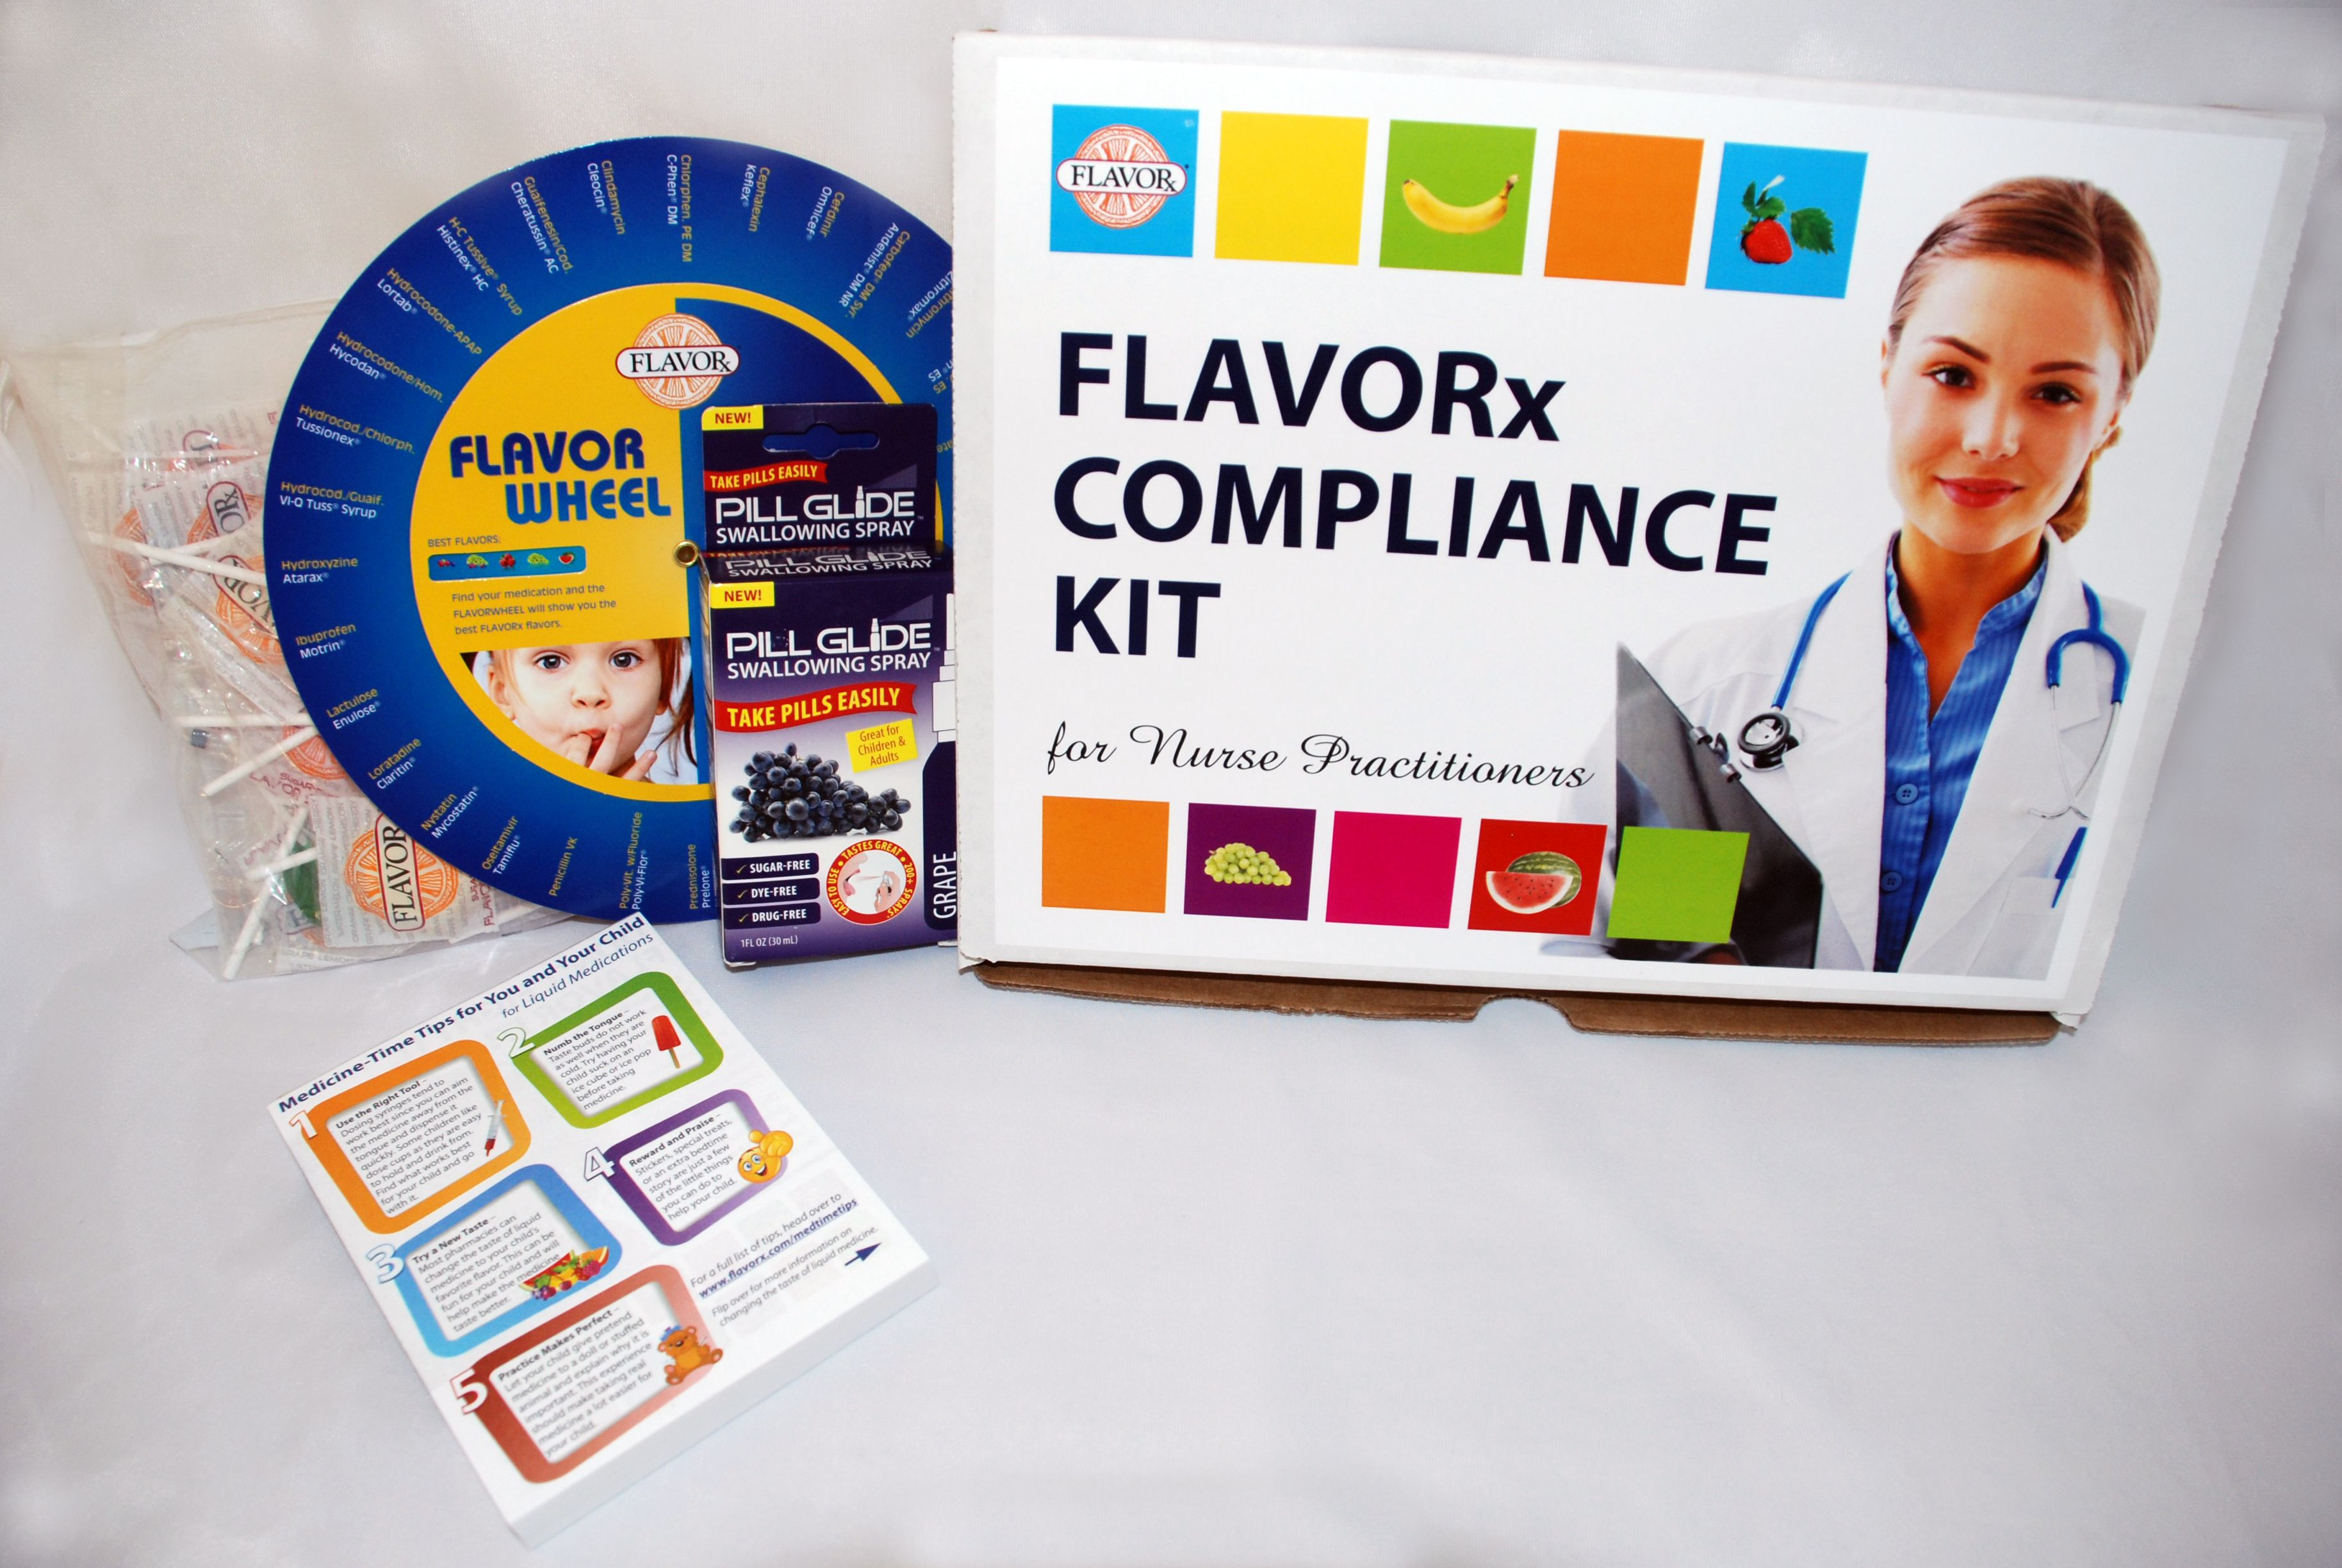 Free Pediatric Adherence Kit from FLAVORx! At FLAVORx, we